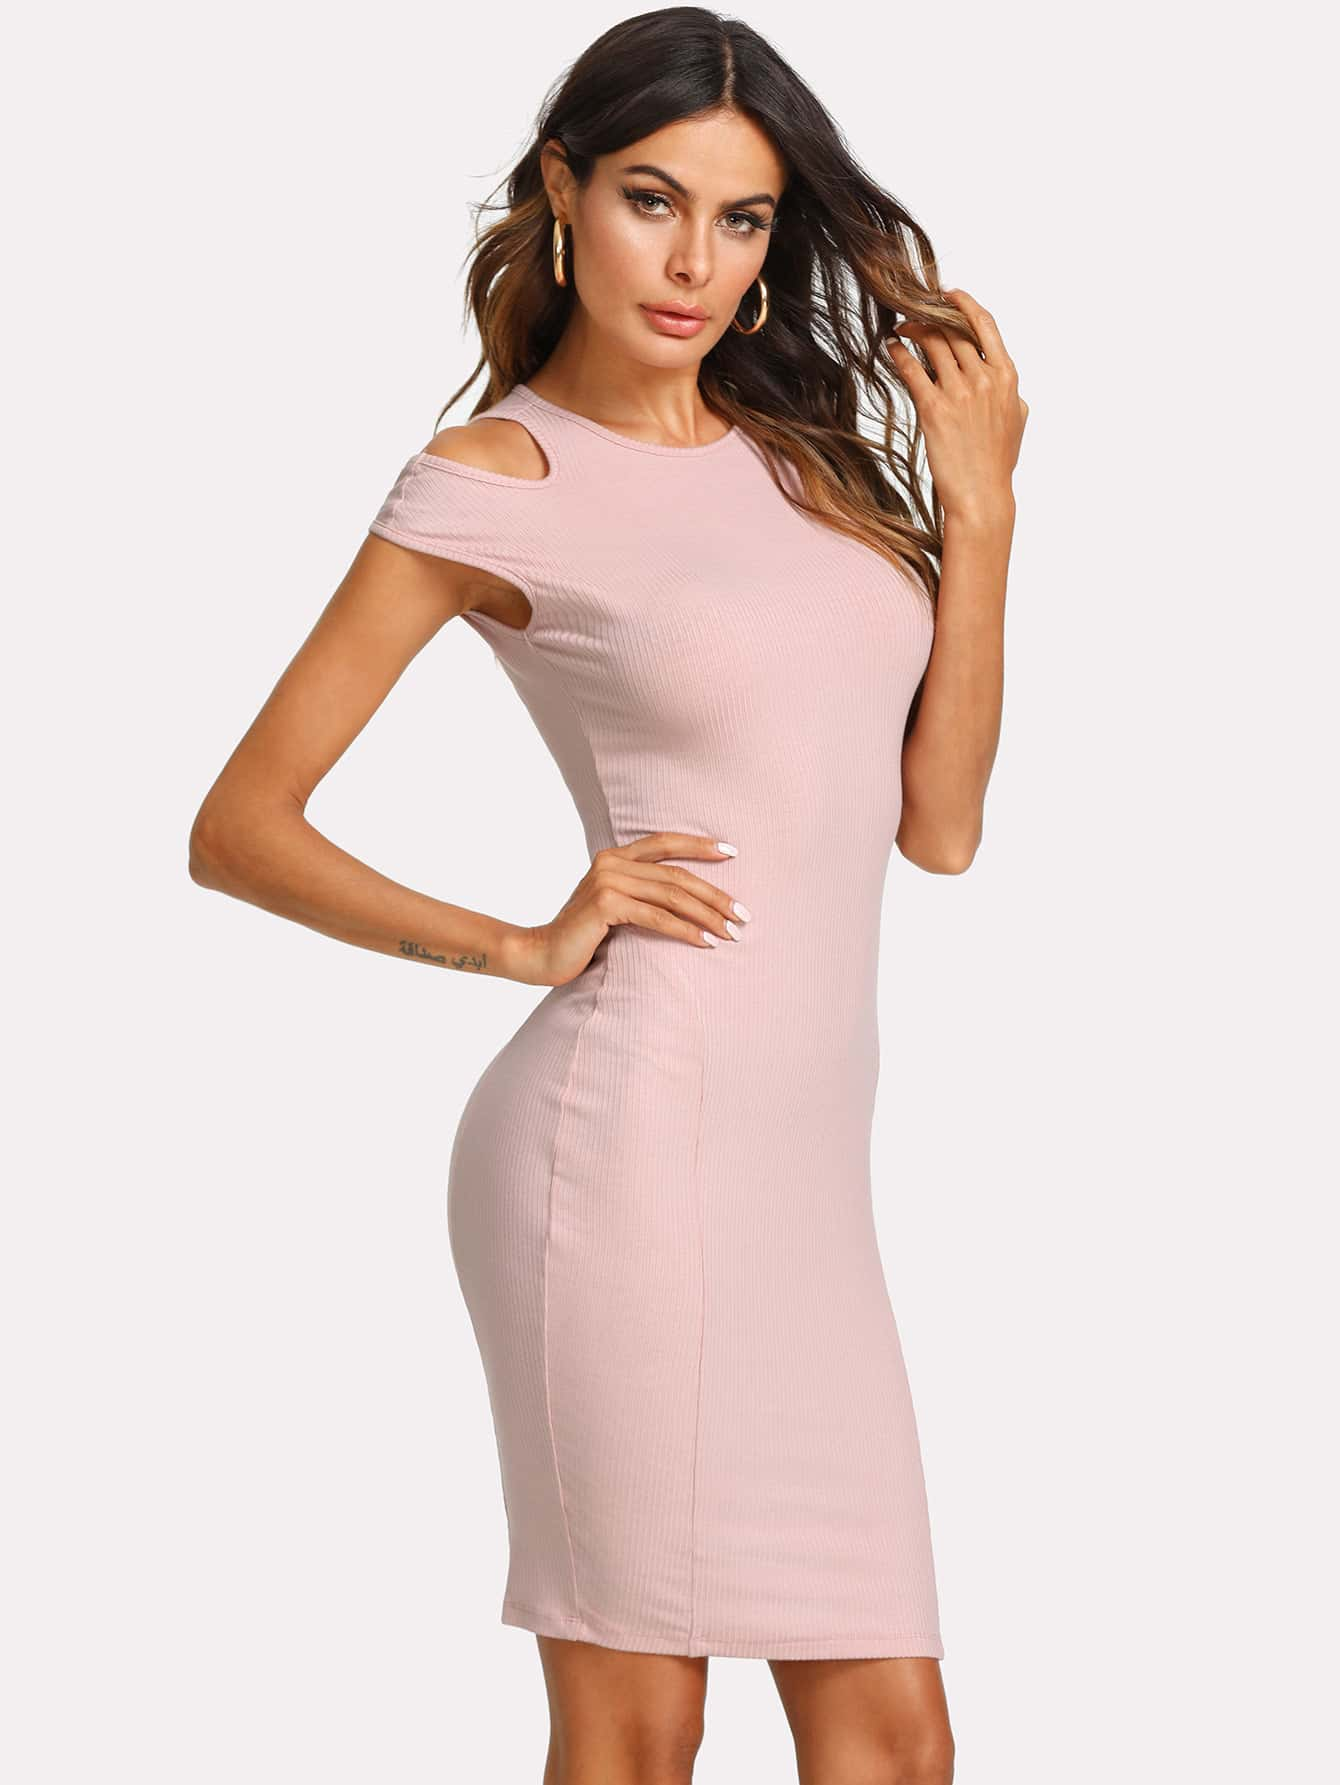 Cut Out Detail Shoulder Ribbed Dress cut out detail fit and flared sleeveless dress